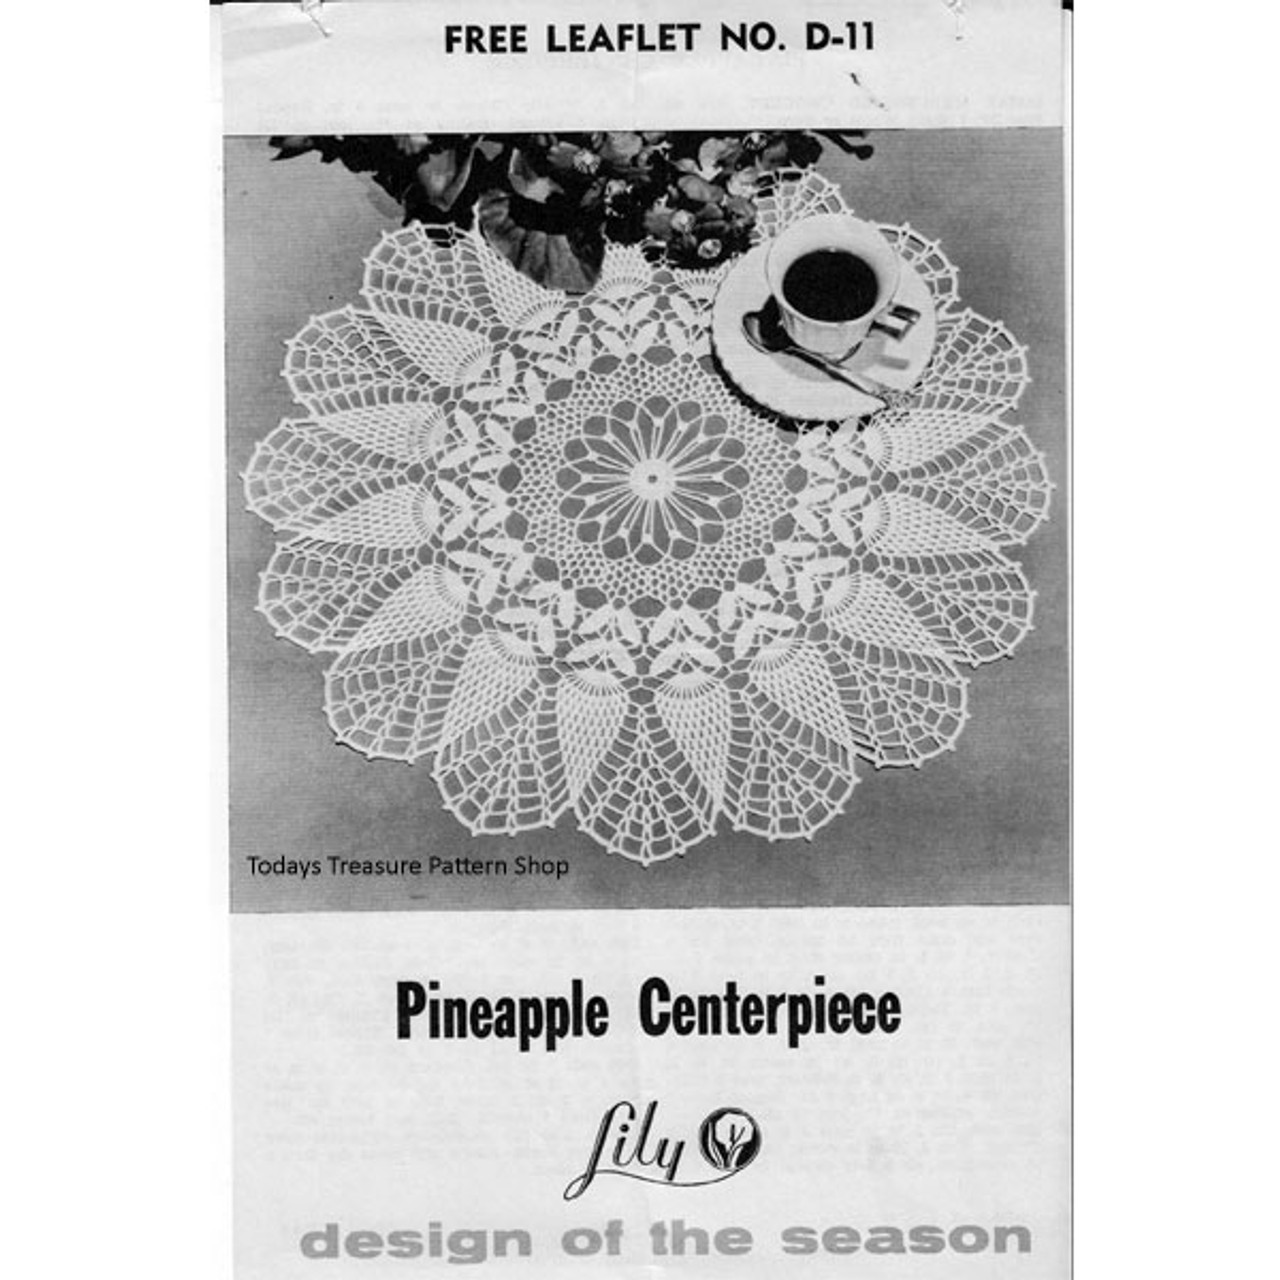 Pineapple Centerpiece Crochet Doily Pattern from Lily Mills